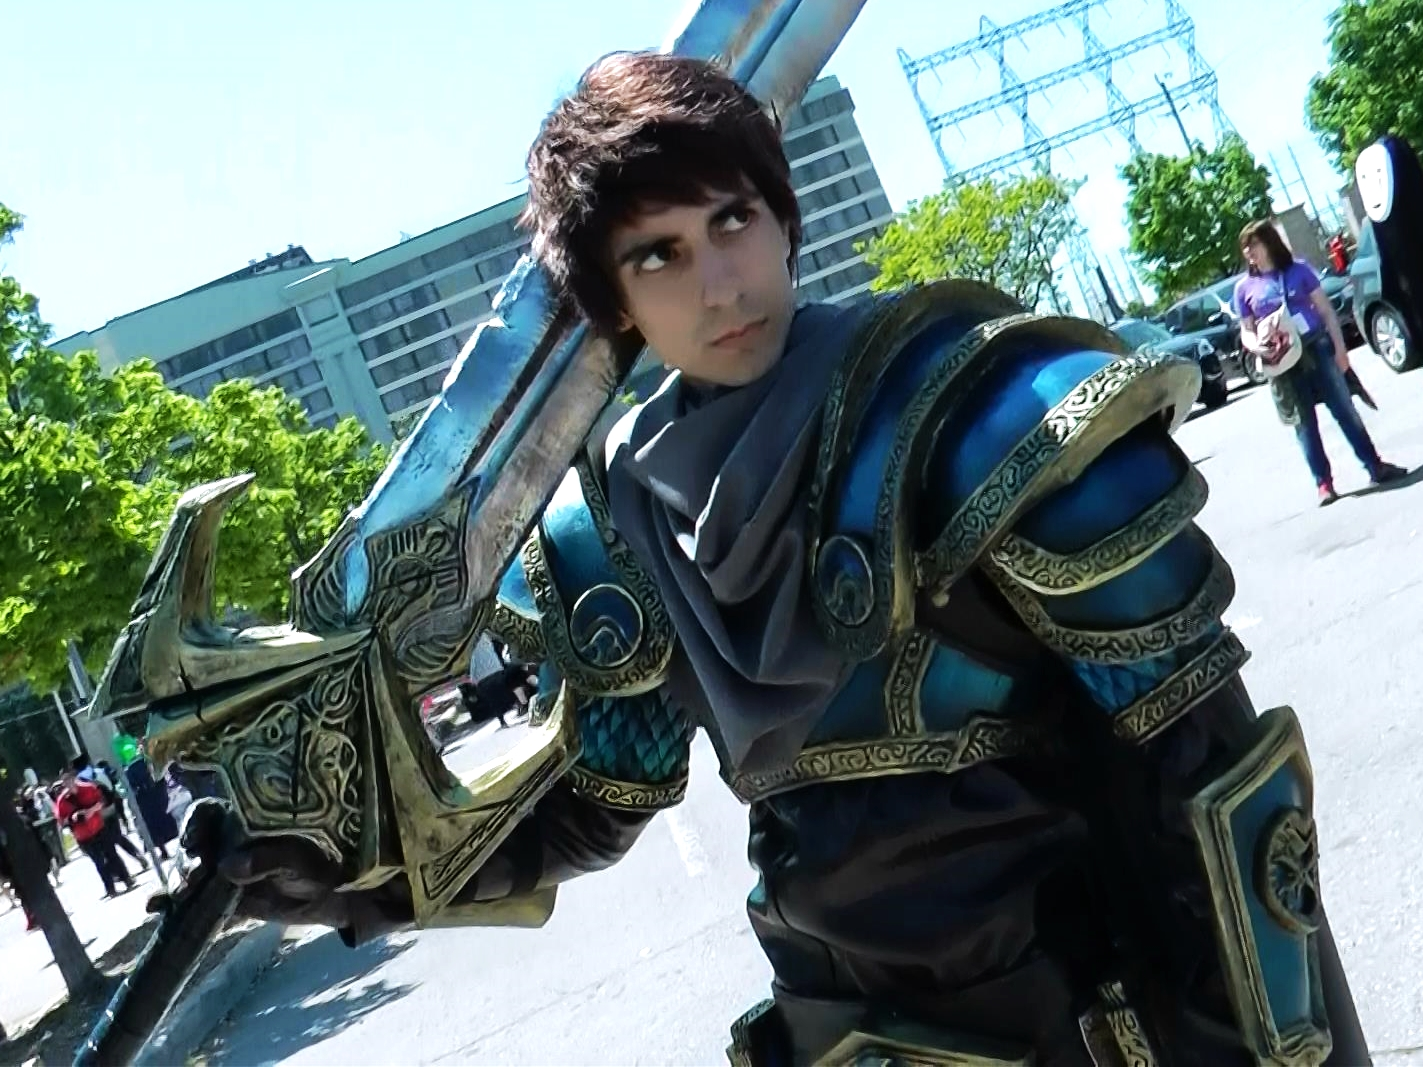 Garen Crownsguard from League of Legends. This cosplayer puts so much heart into his costumes. He's a delight to see every year.